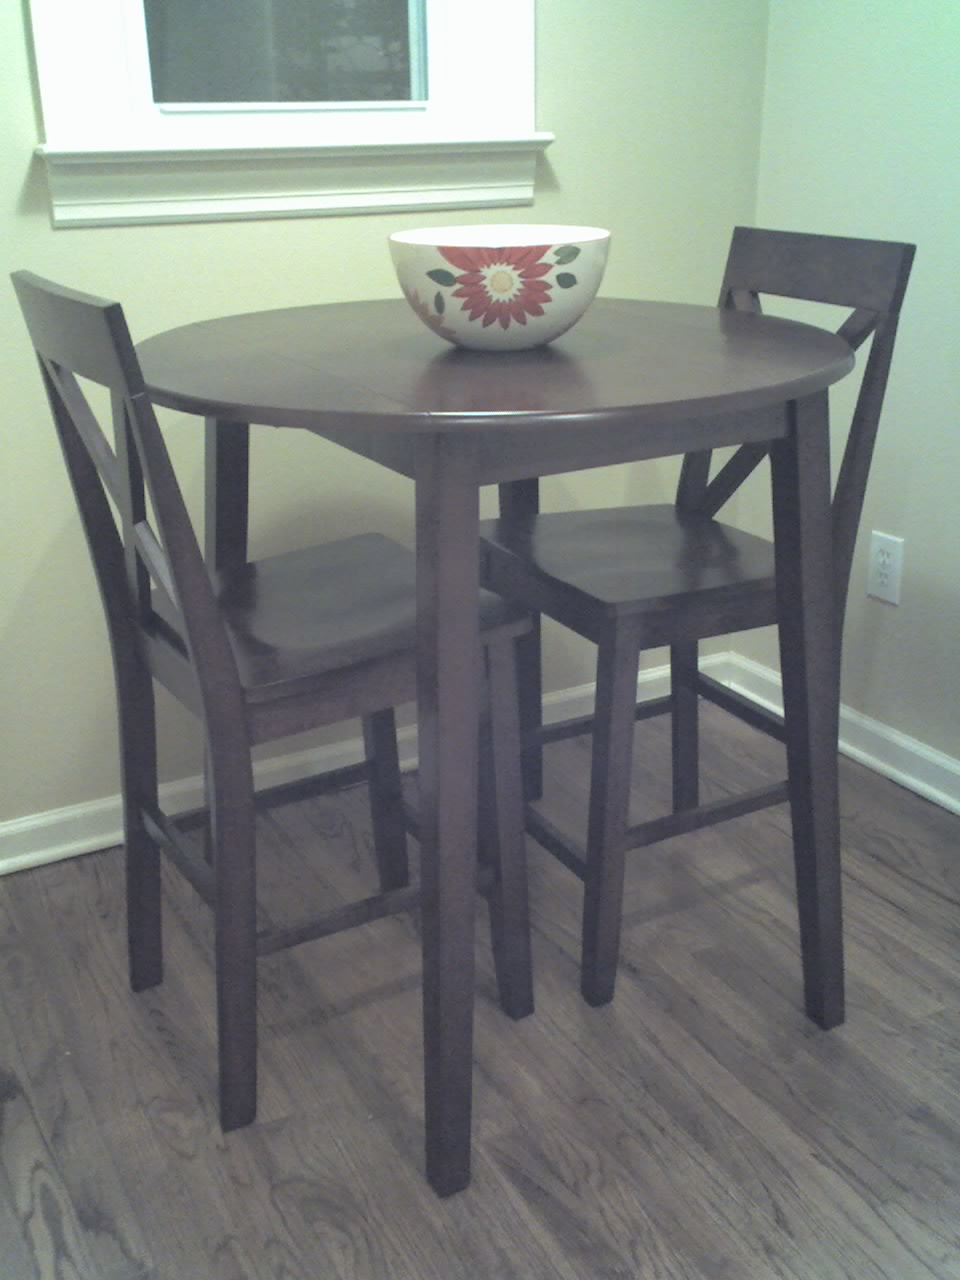 Tall kitchen tables and chairs photo - 1